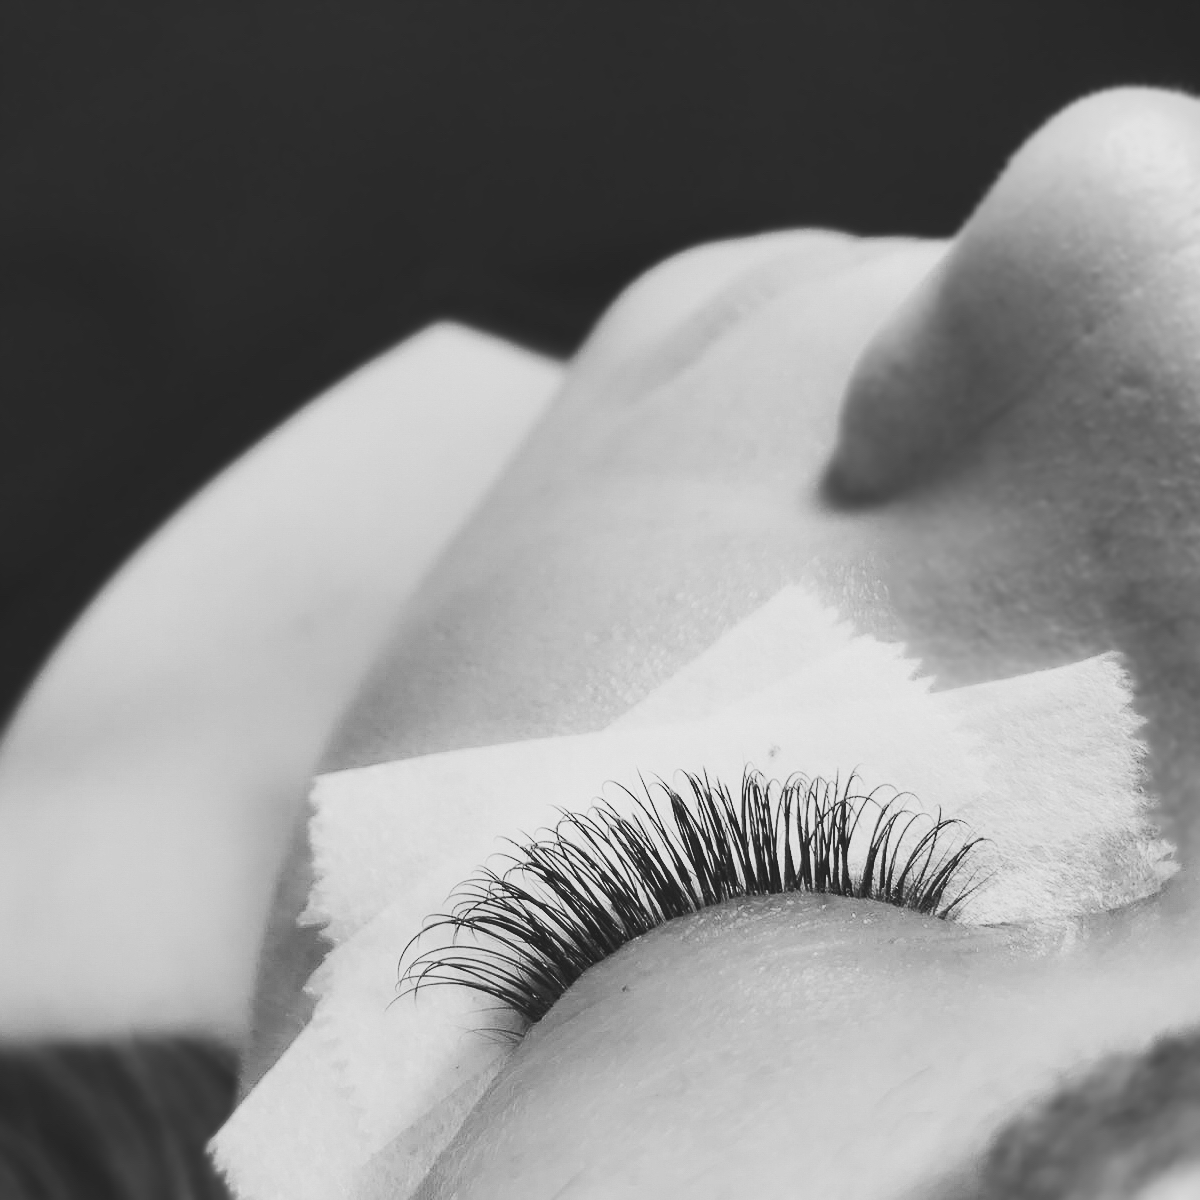 Upcoming Classes - Classic & Intro to Volume |$1800| Sept 28th & 29th | Oct 26th & 27th | Nov 16th & 17th || ASK about our private & semi-private classes |Classic Lash Course |$1200| Sept 28th & 29th | Oct 26th & 27th | Nov 16th & 17th |